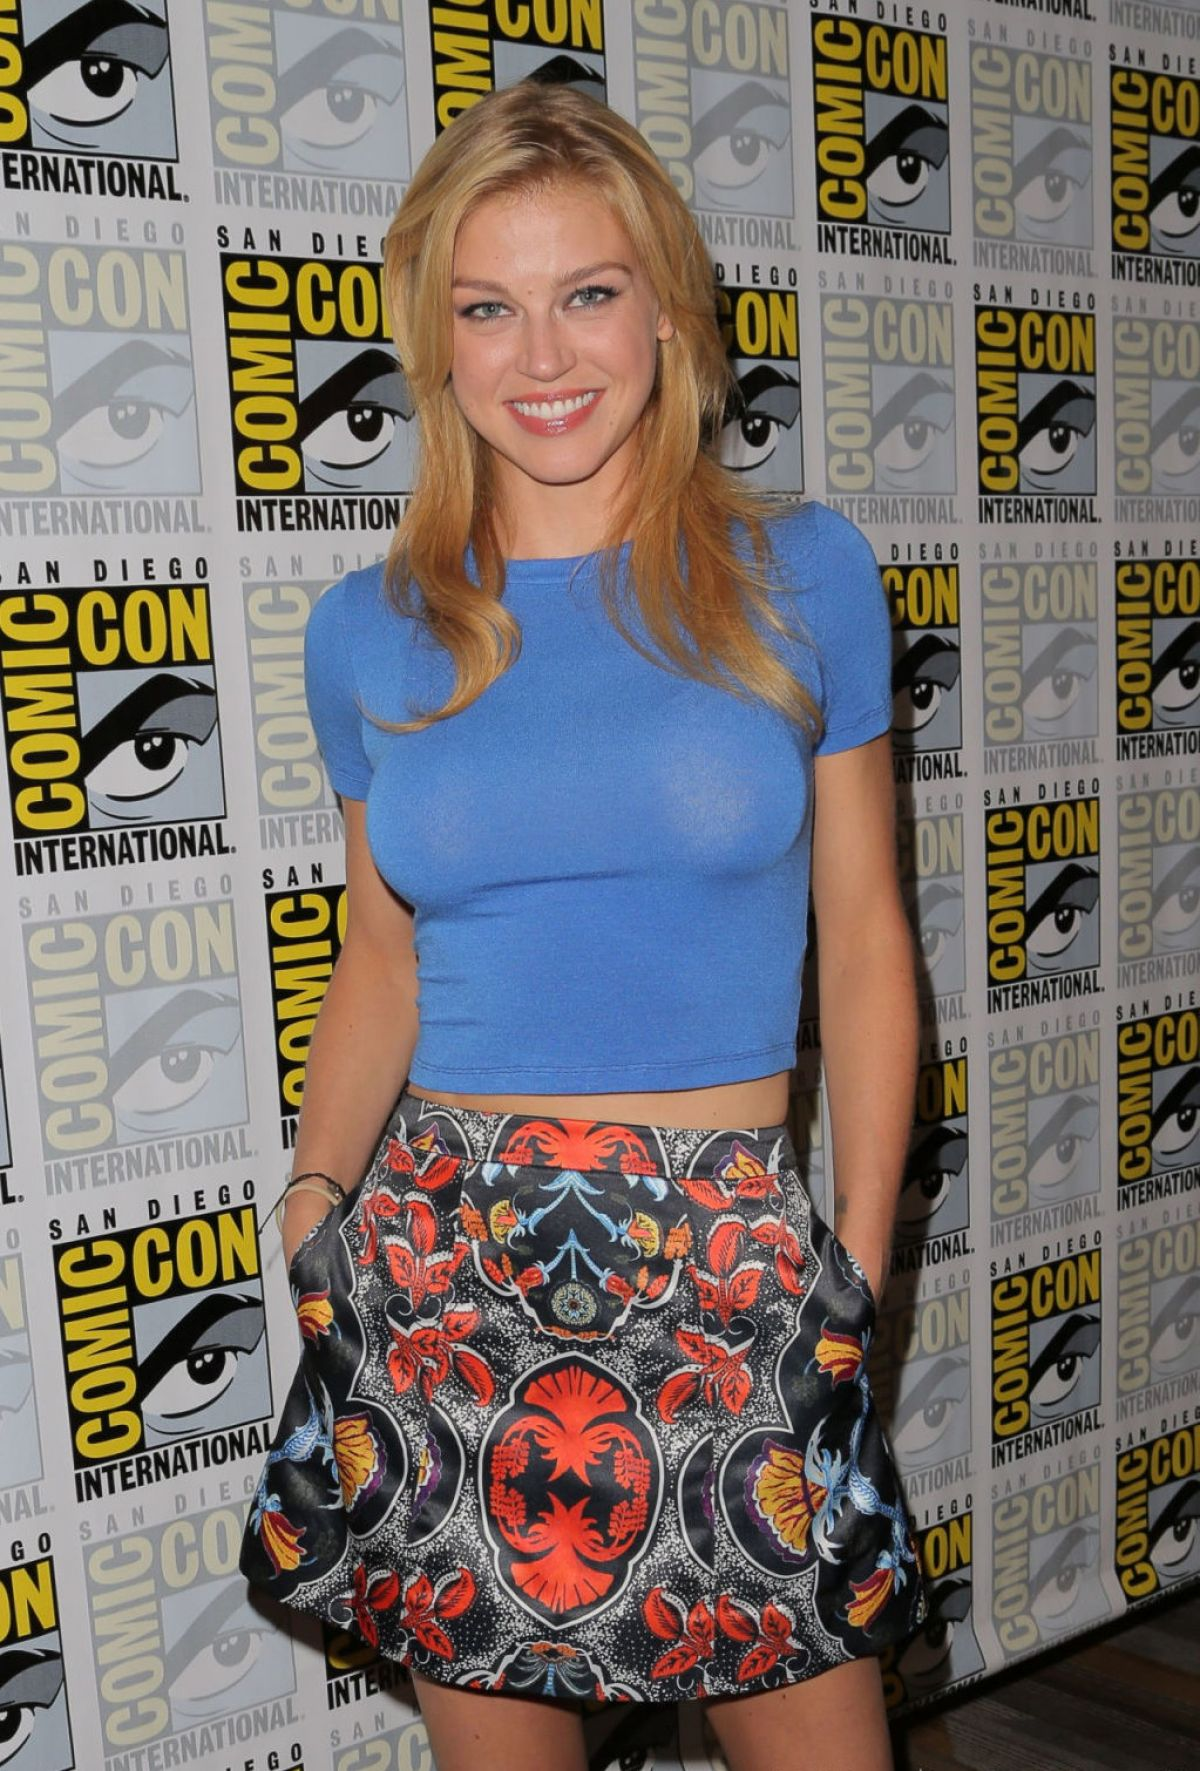 ADRIANNE PALICKI at Agents of S.H.I.E.L.D. Panel at Comic-con in San Diego